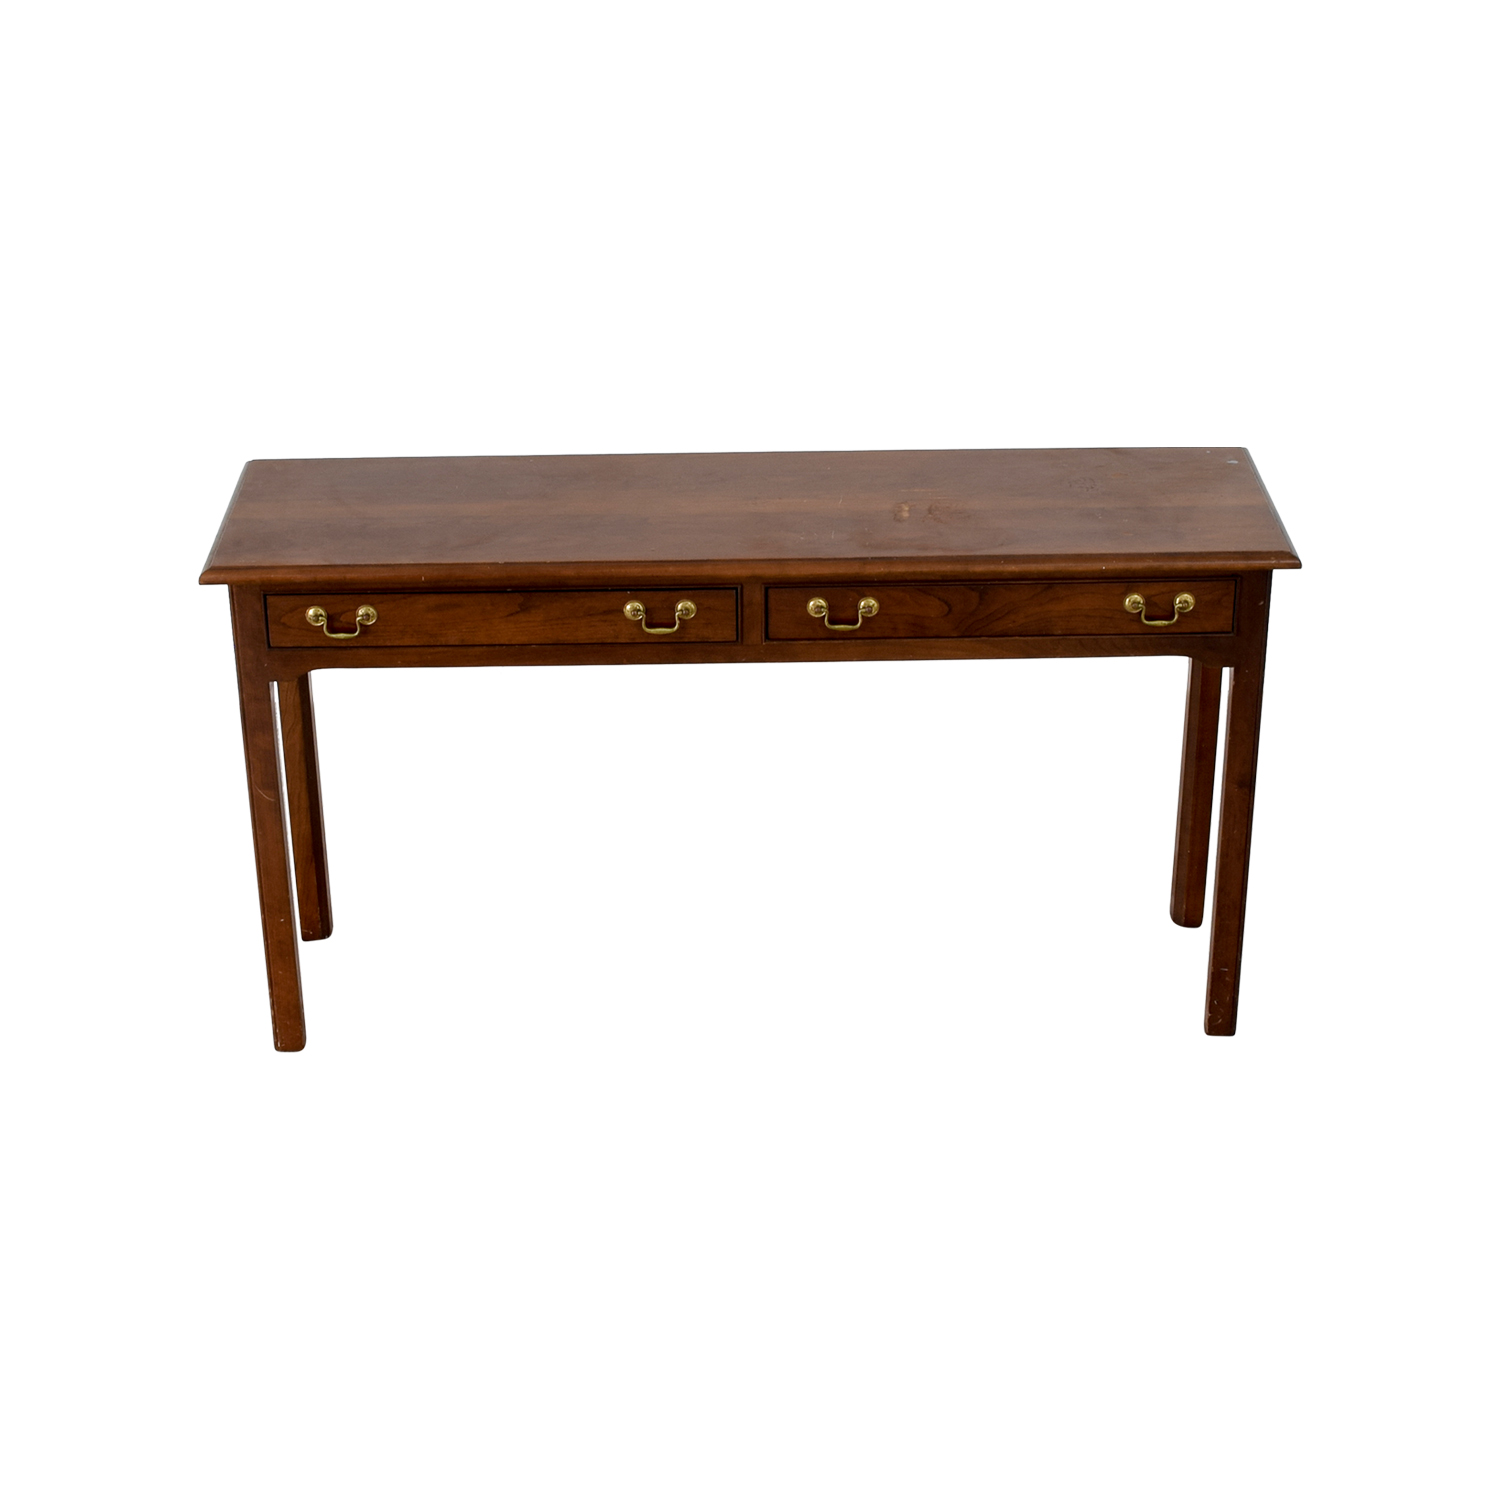 buy Stickley Stickley Cherry Valley Sofa Table or Desk online